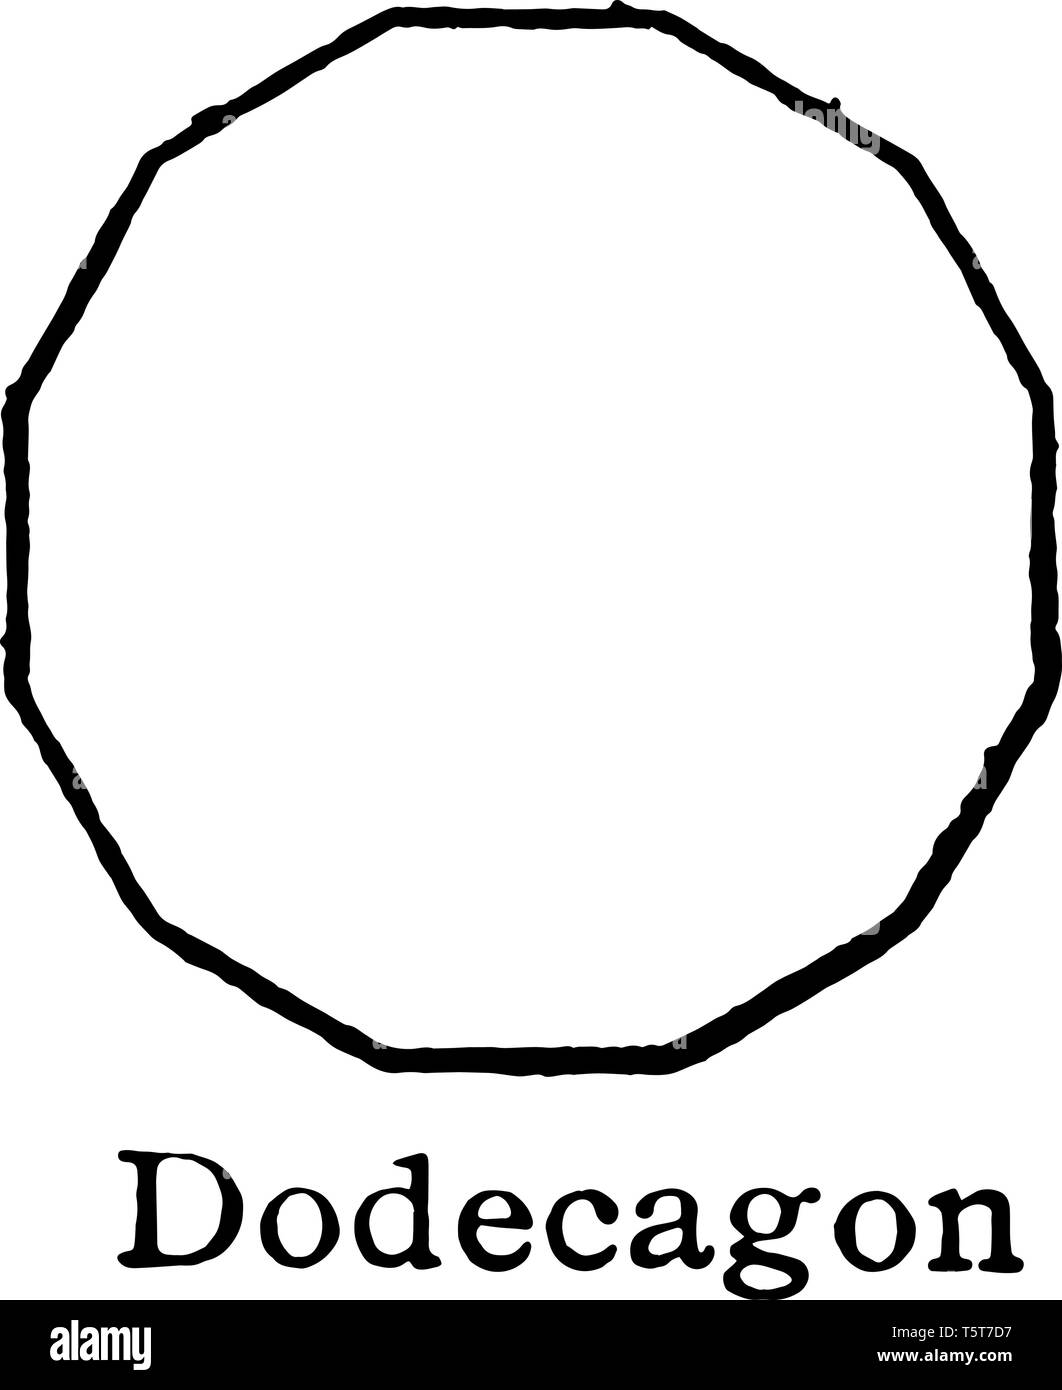 The polygon that shows 10 sides, called it as decagon. A regular decagon of all sides of the composite length and each internal angle is always the sa - Stock Vector